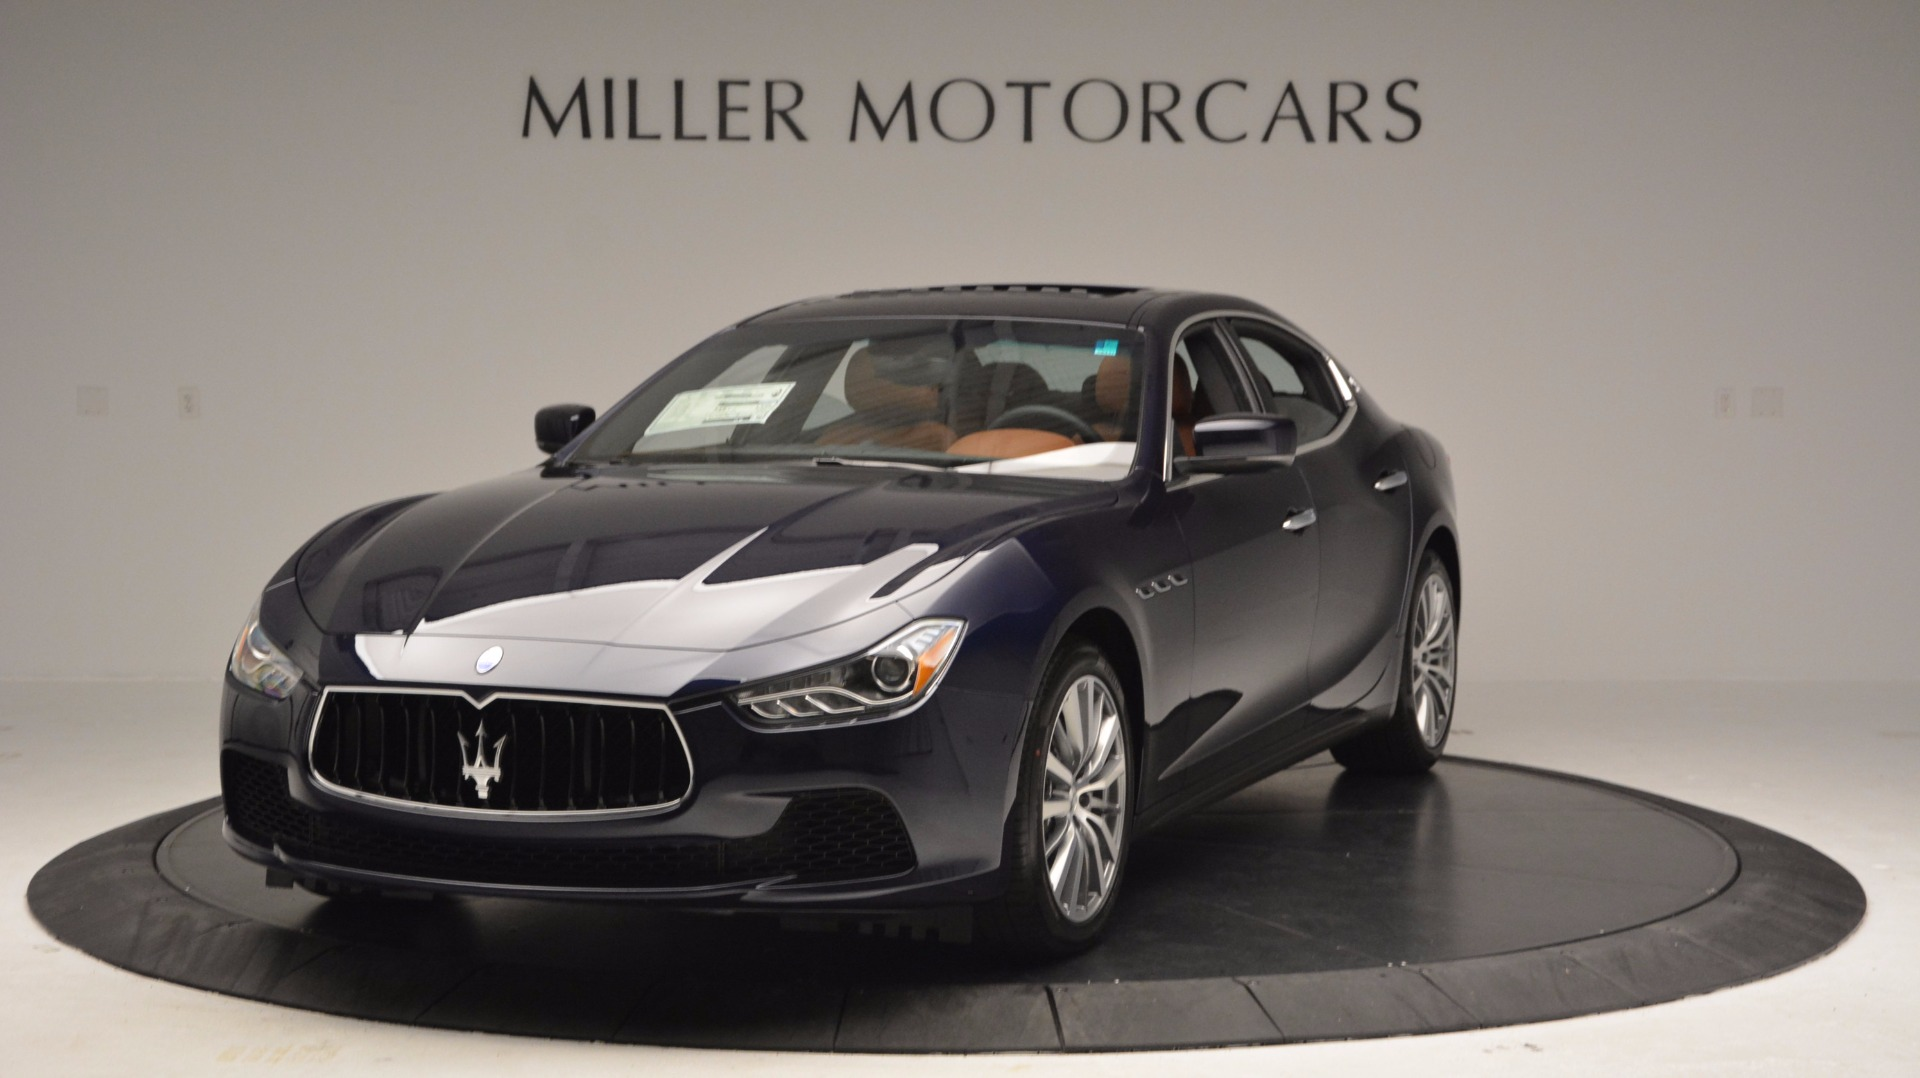 New 2017 Maserati Ghibli S Q4 for sale Sold at Maserati of Greenwich in Greenwich CT 06830 1